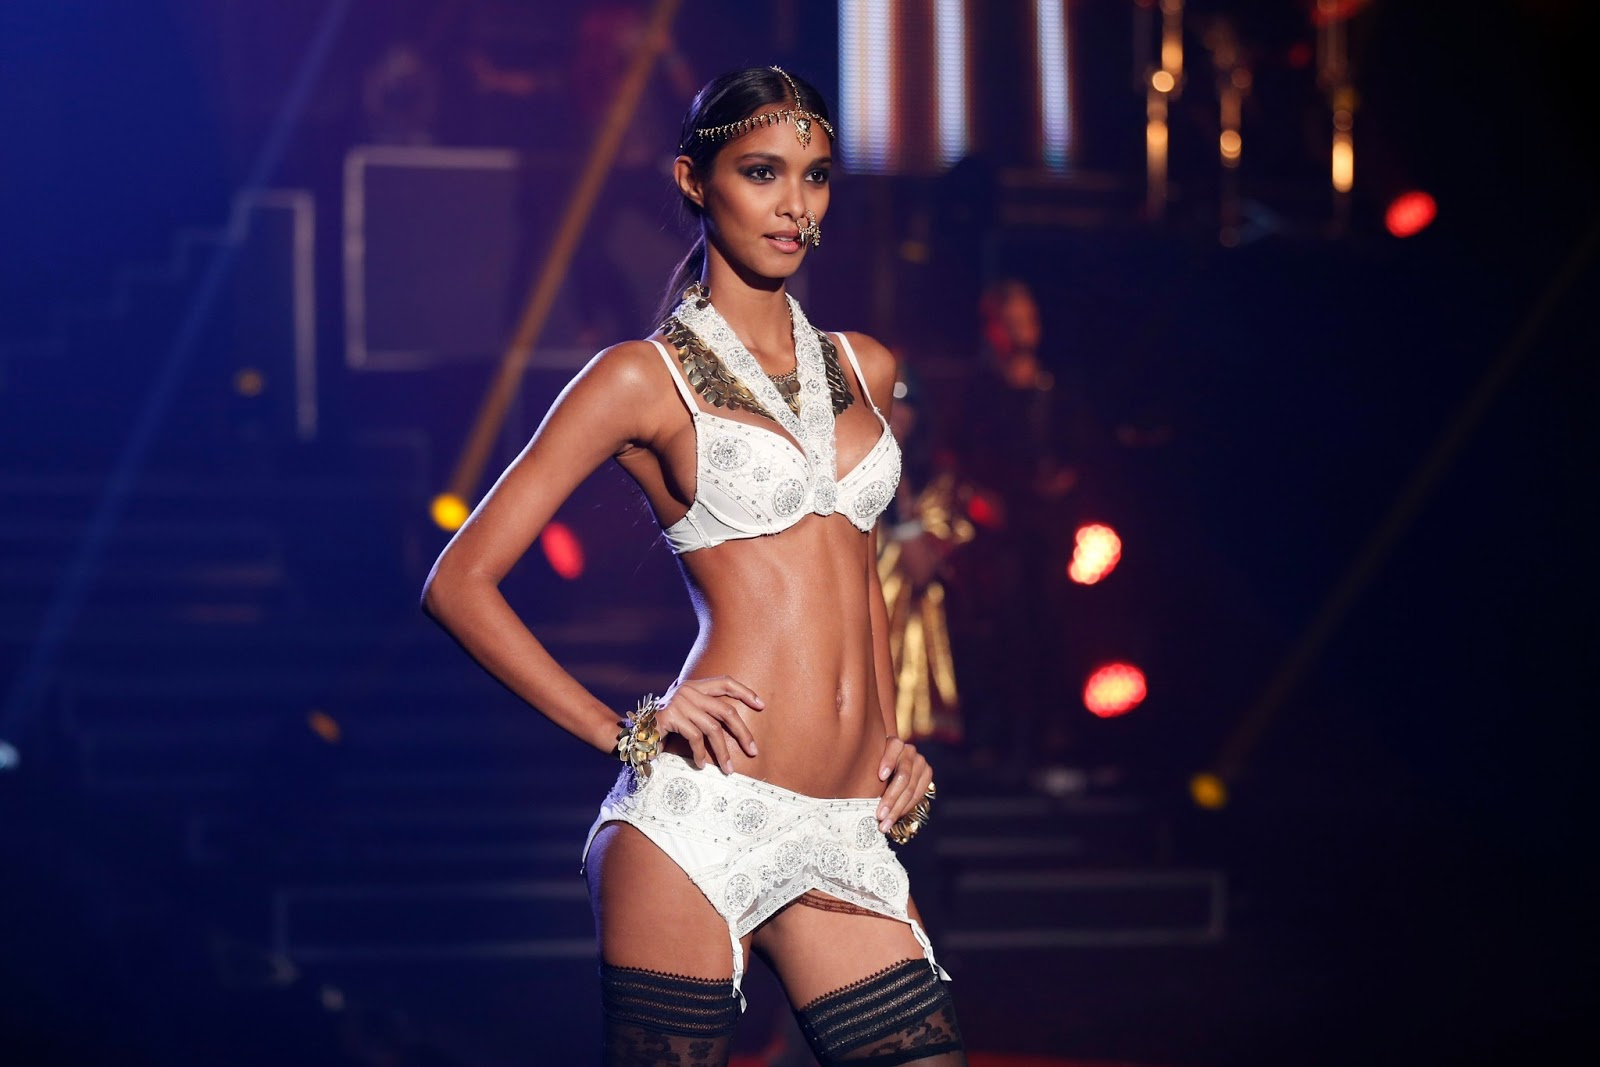 Tata Jazz Blog: 20 most wanted, cover girl, runway queen ...